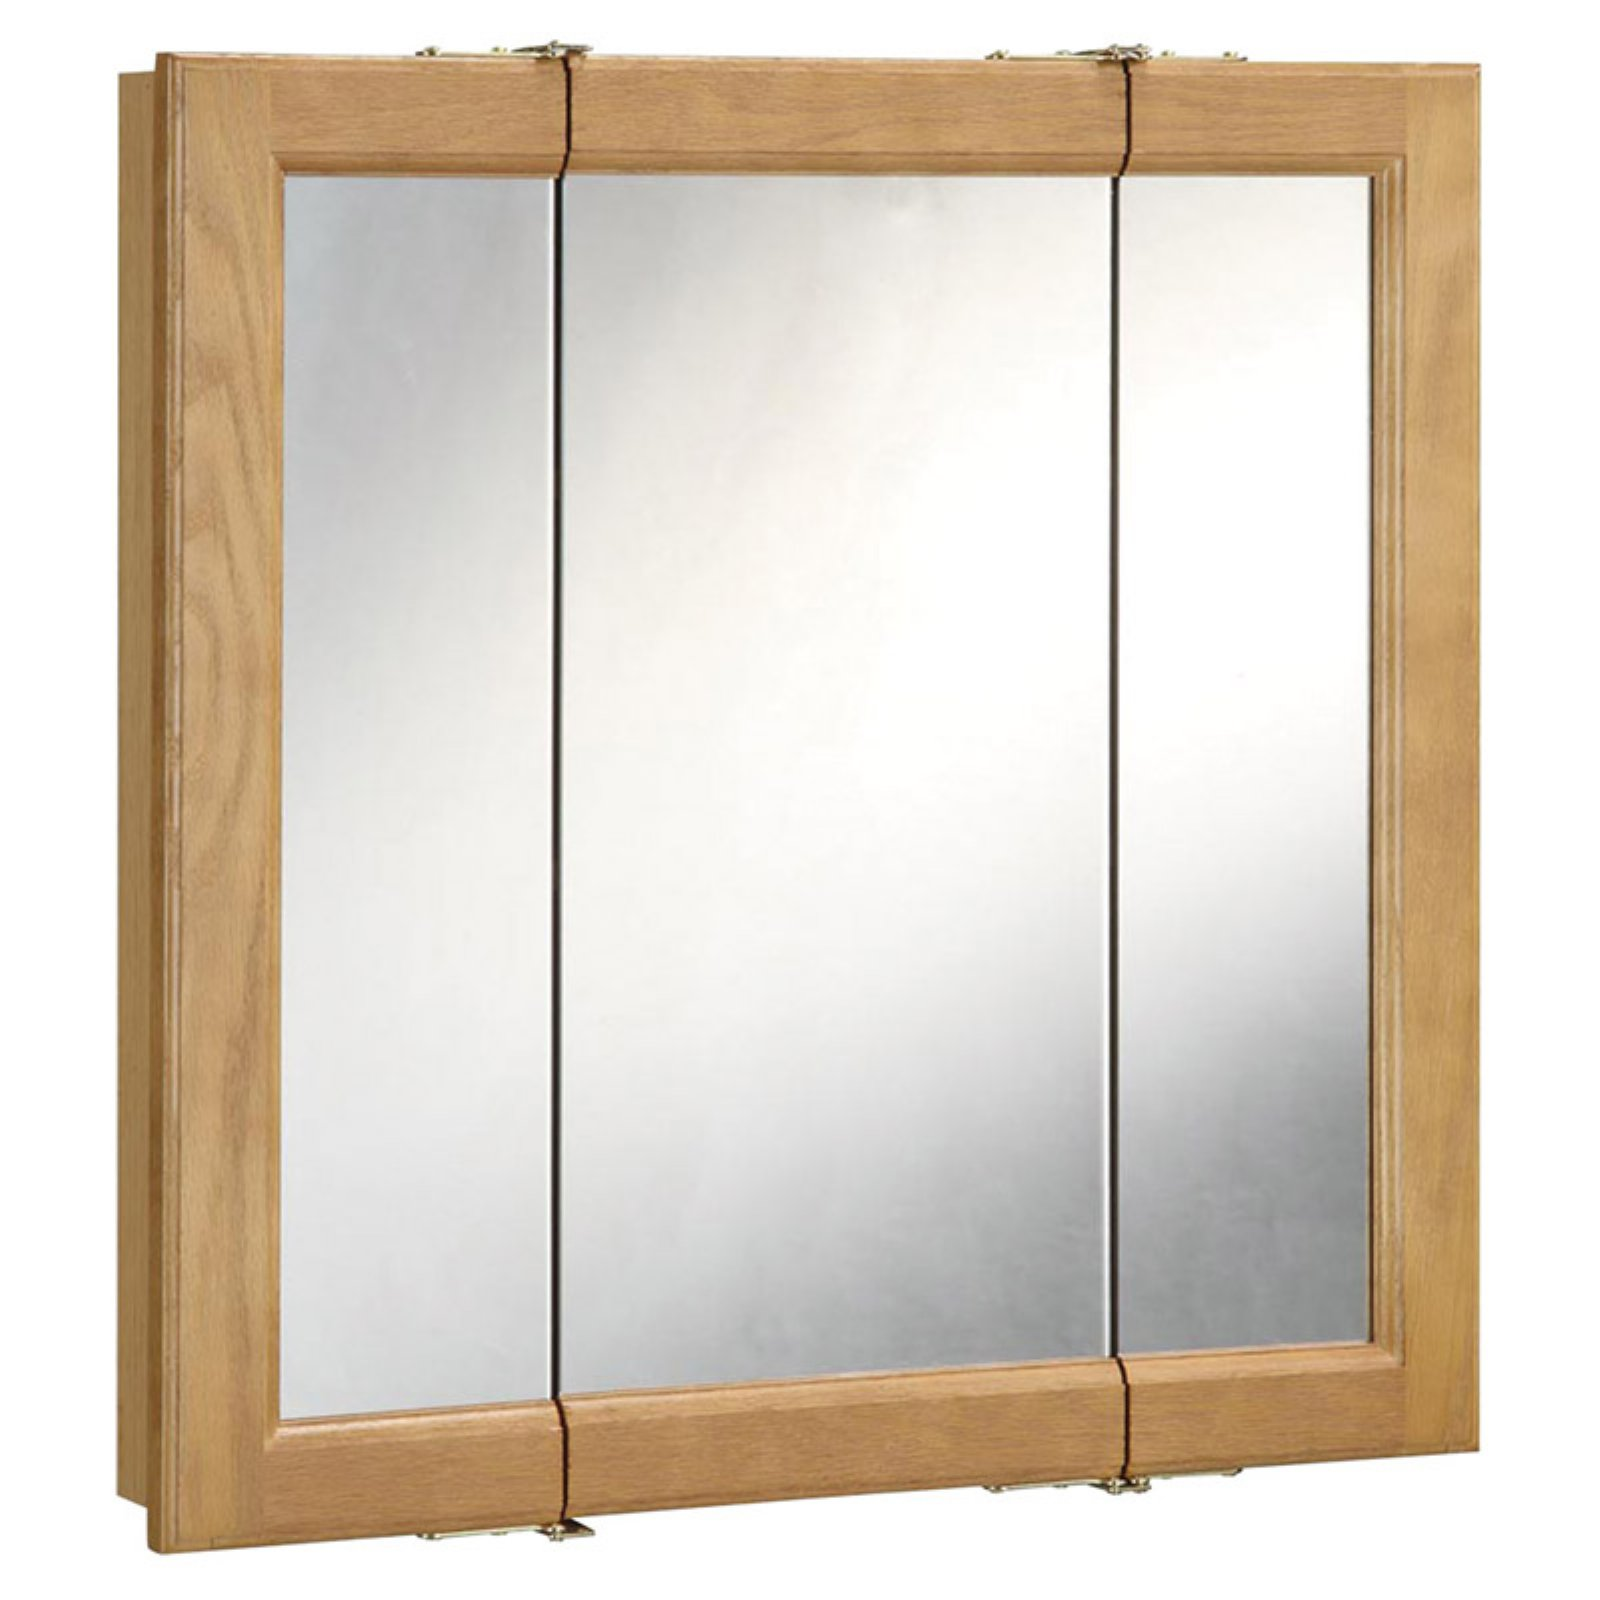 Design House Richland Tri-View Medicine Cabinet Mirror with 3-Doors by Generic